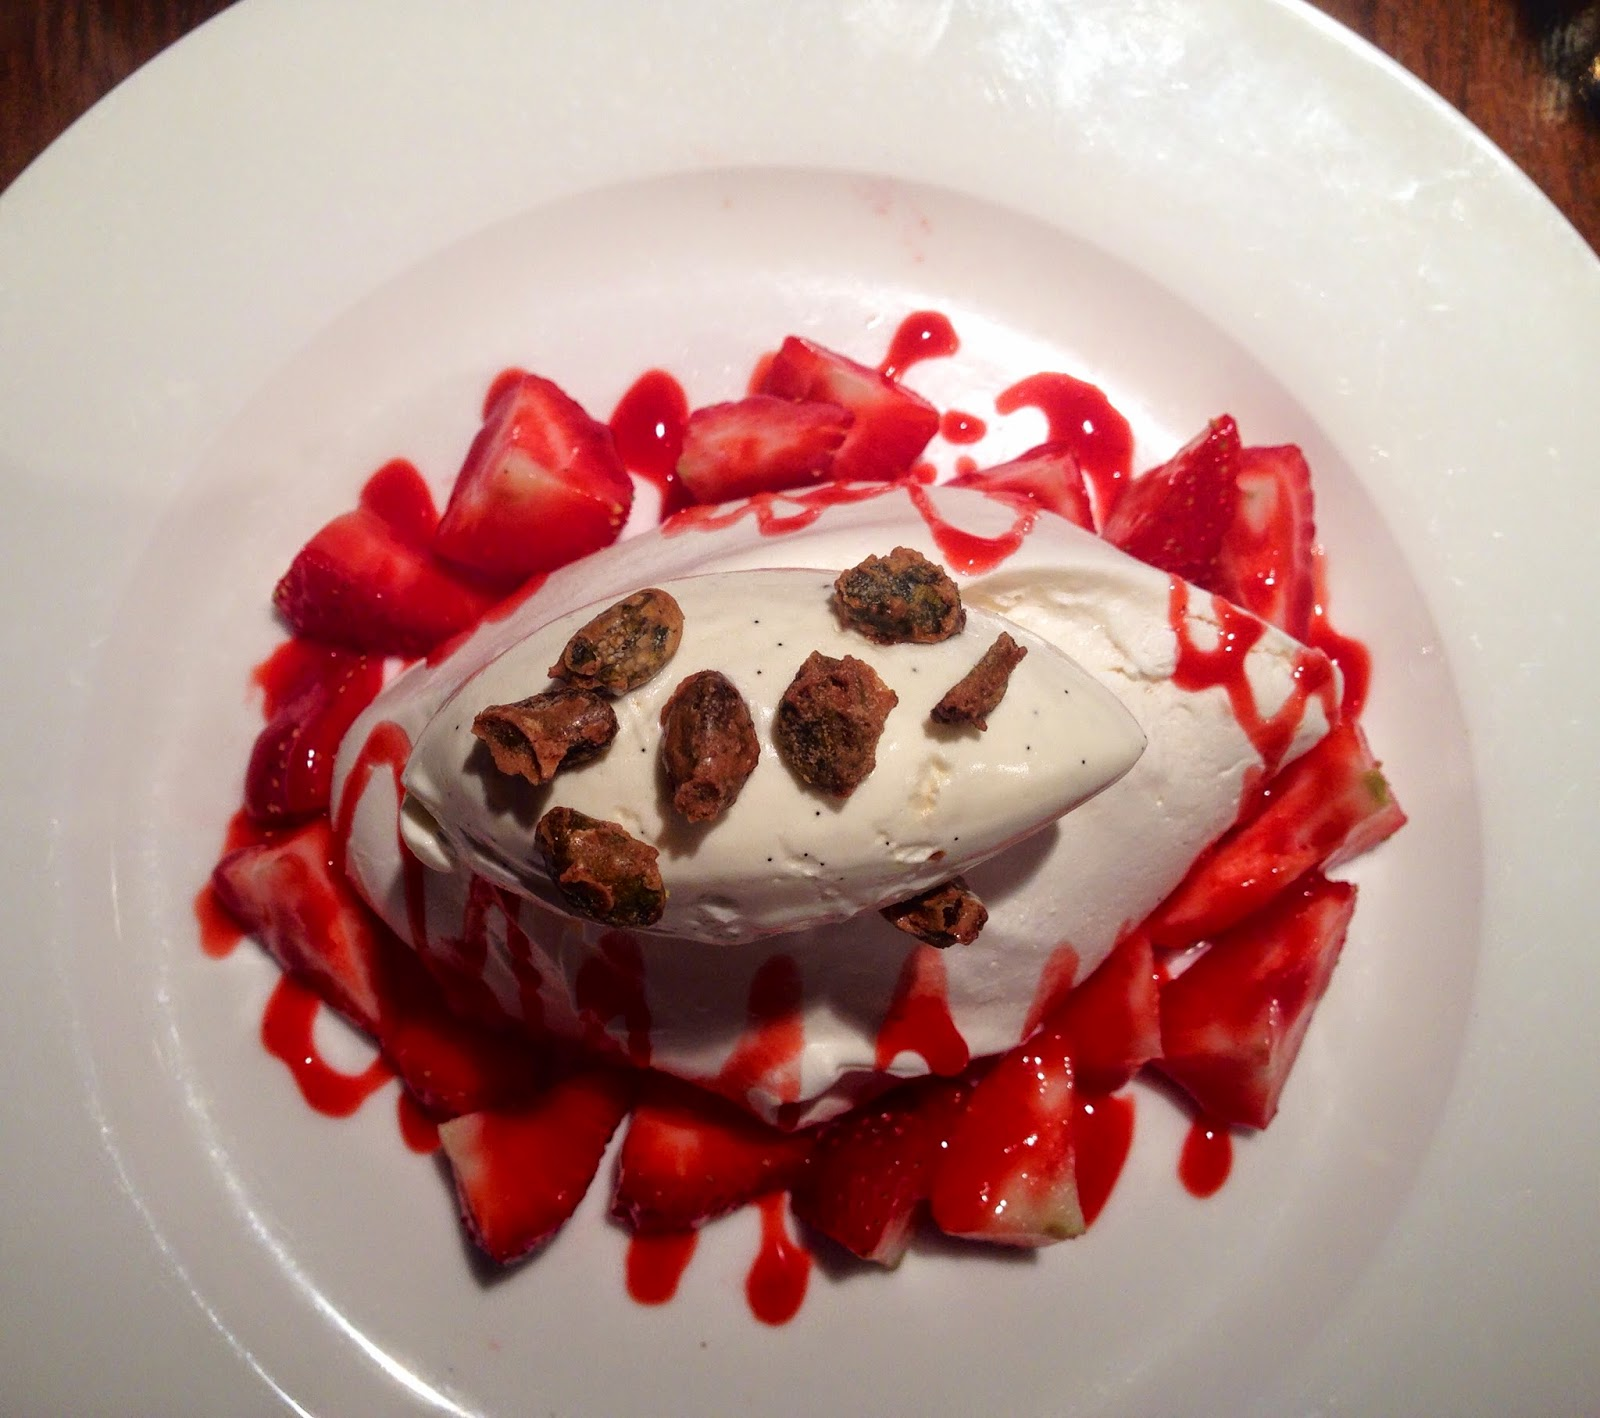 meringue with Chantilly cream, strawberries and toasted pistachios